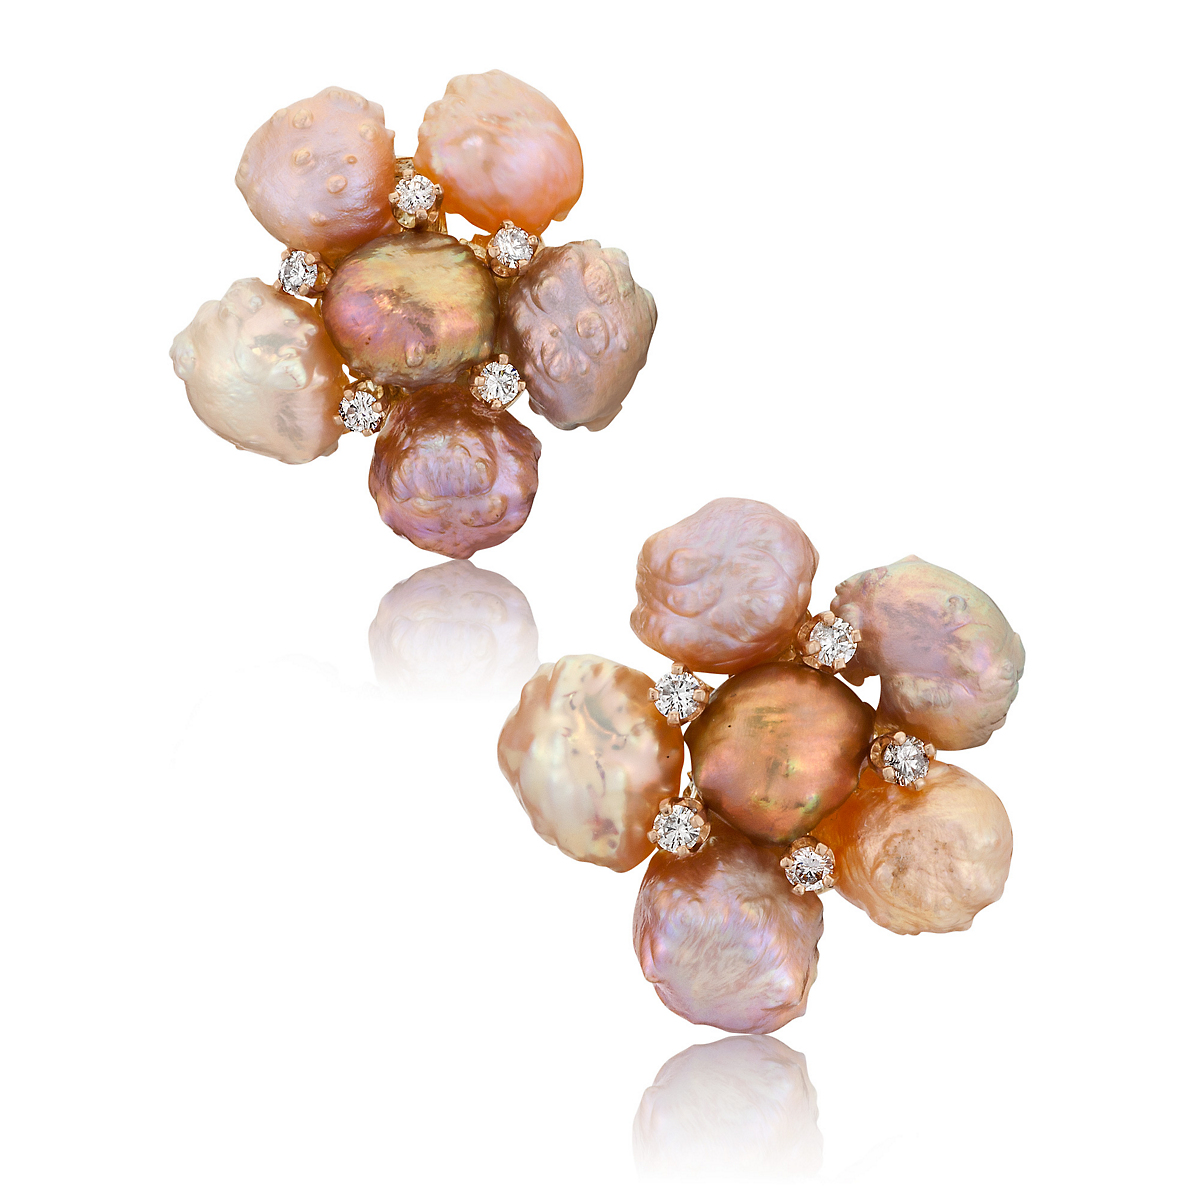 Russell Trusso Rosebud Pearl Cluster Earrings